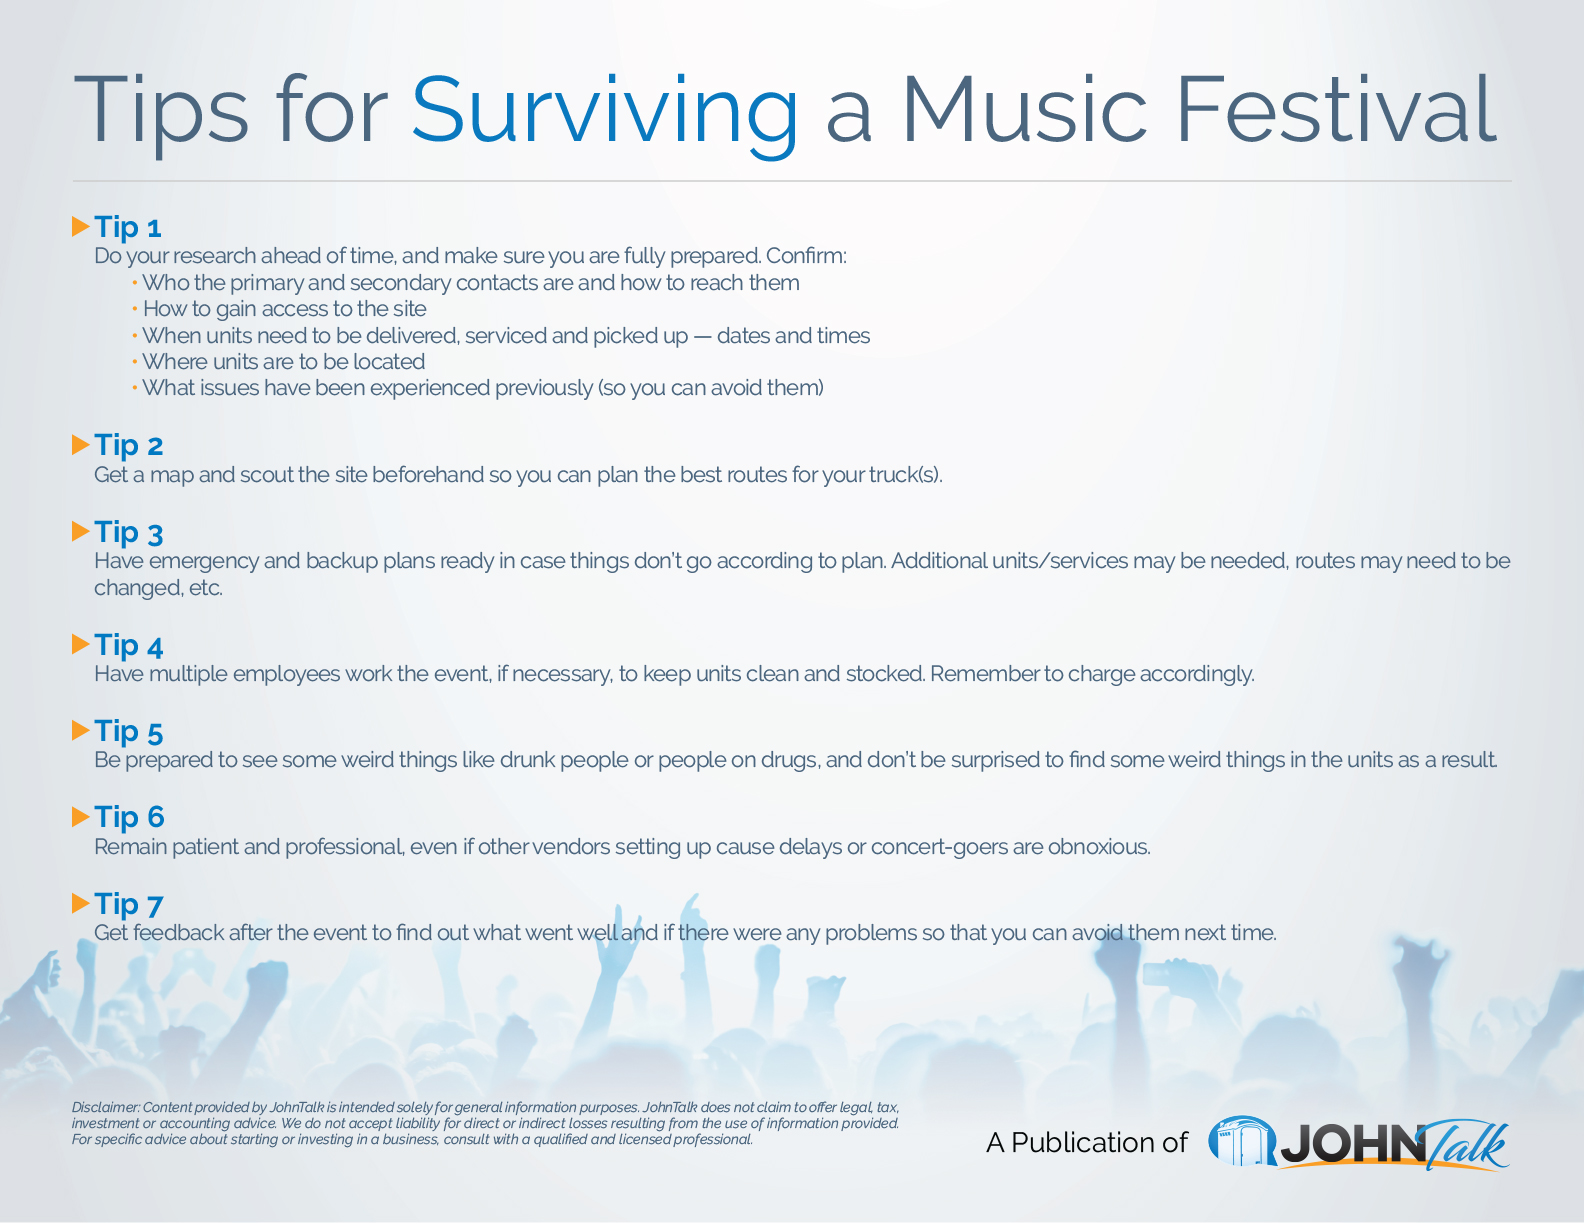 Tips for Surviving a Music Festival